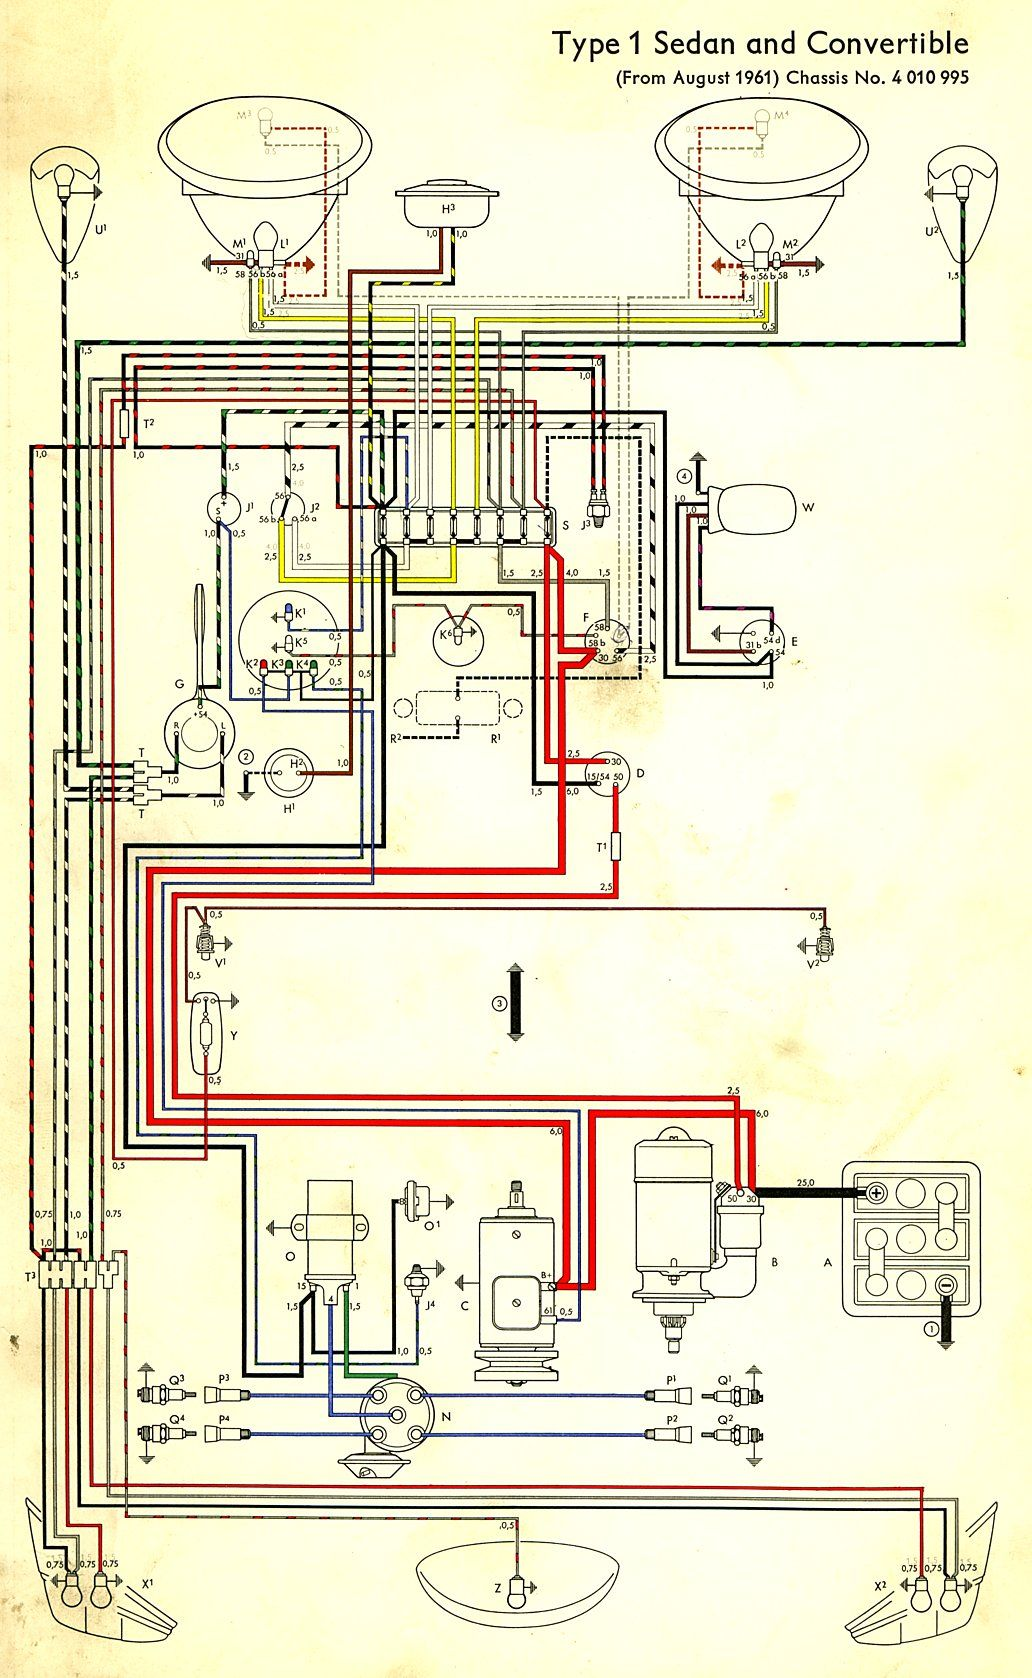 wiring diagram in color  1964 vw bug, beetle, convertible  the samba